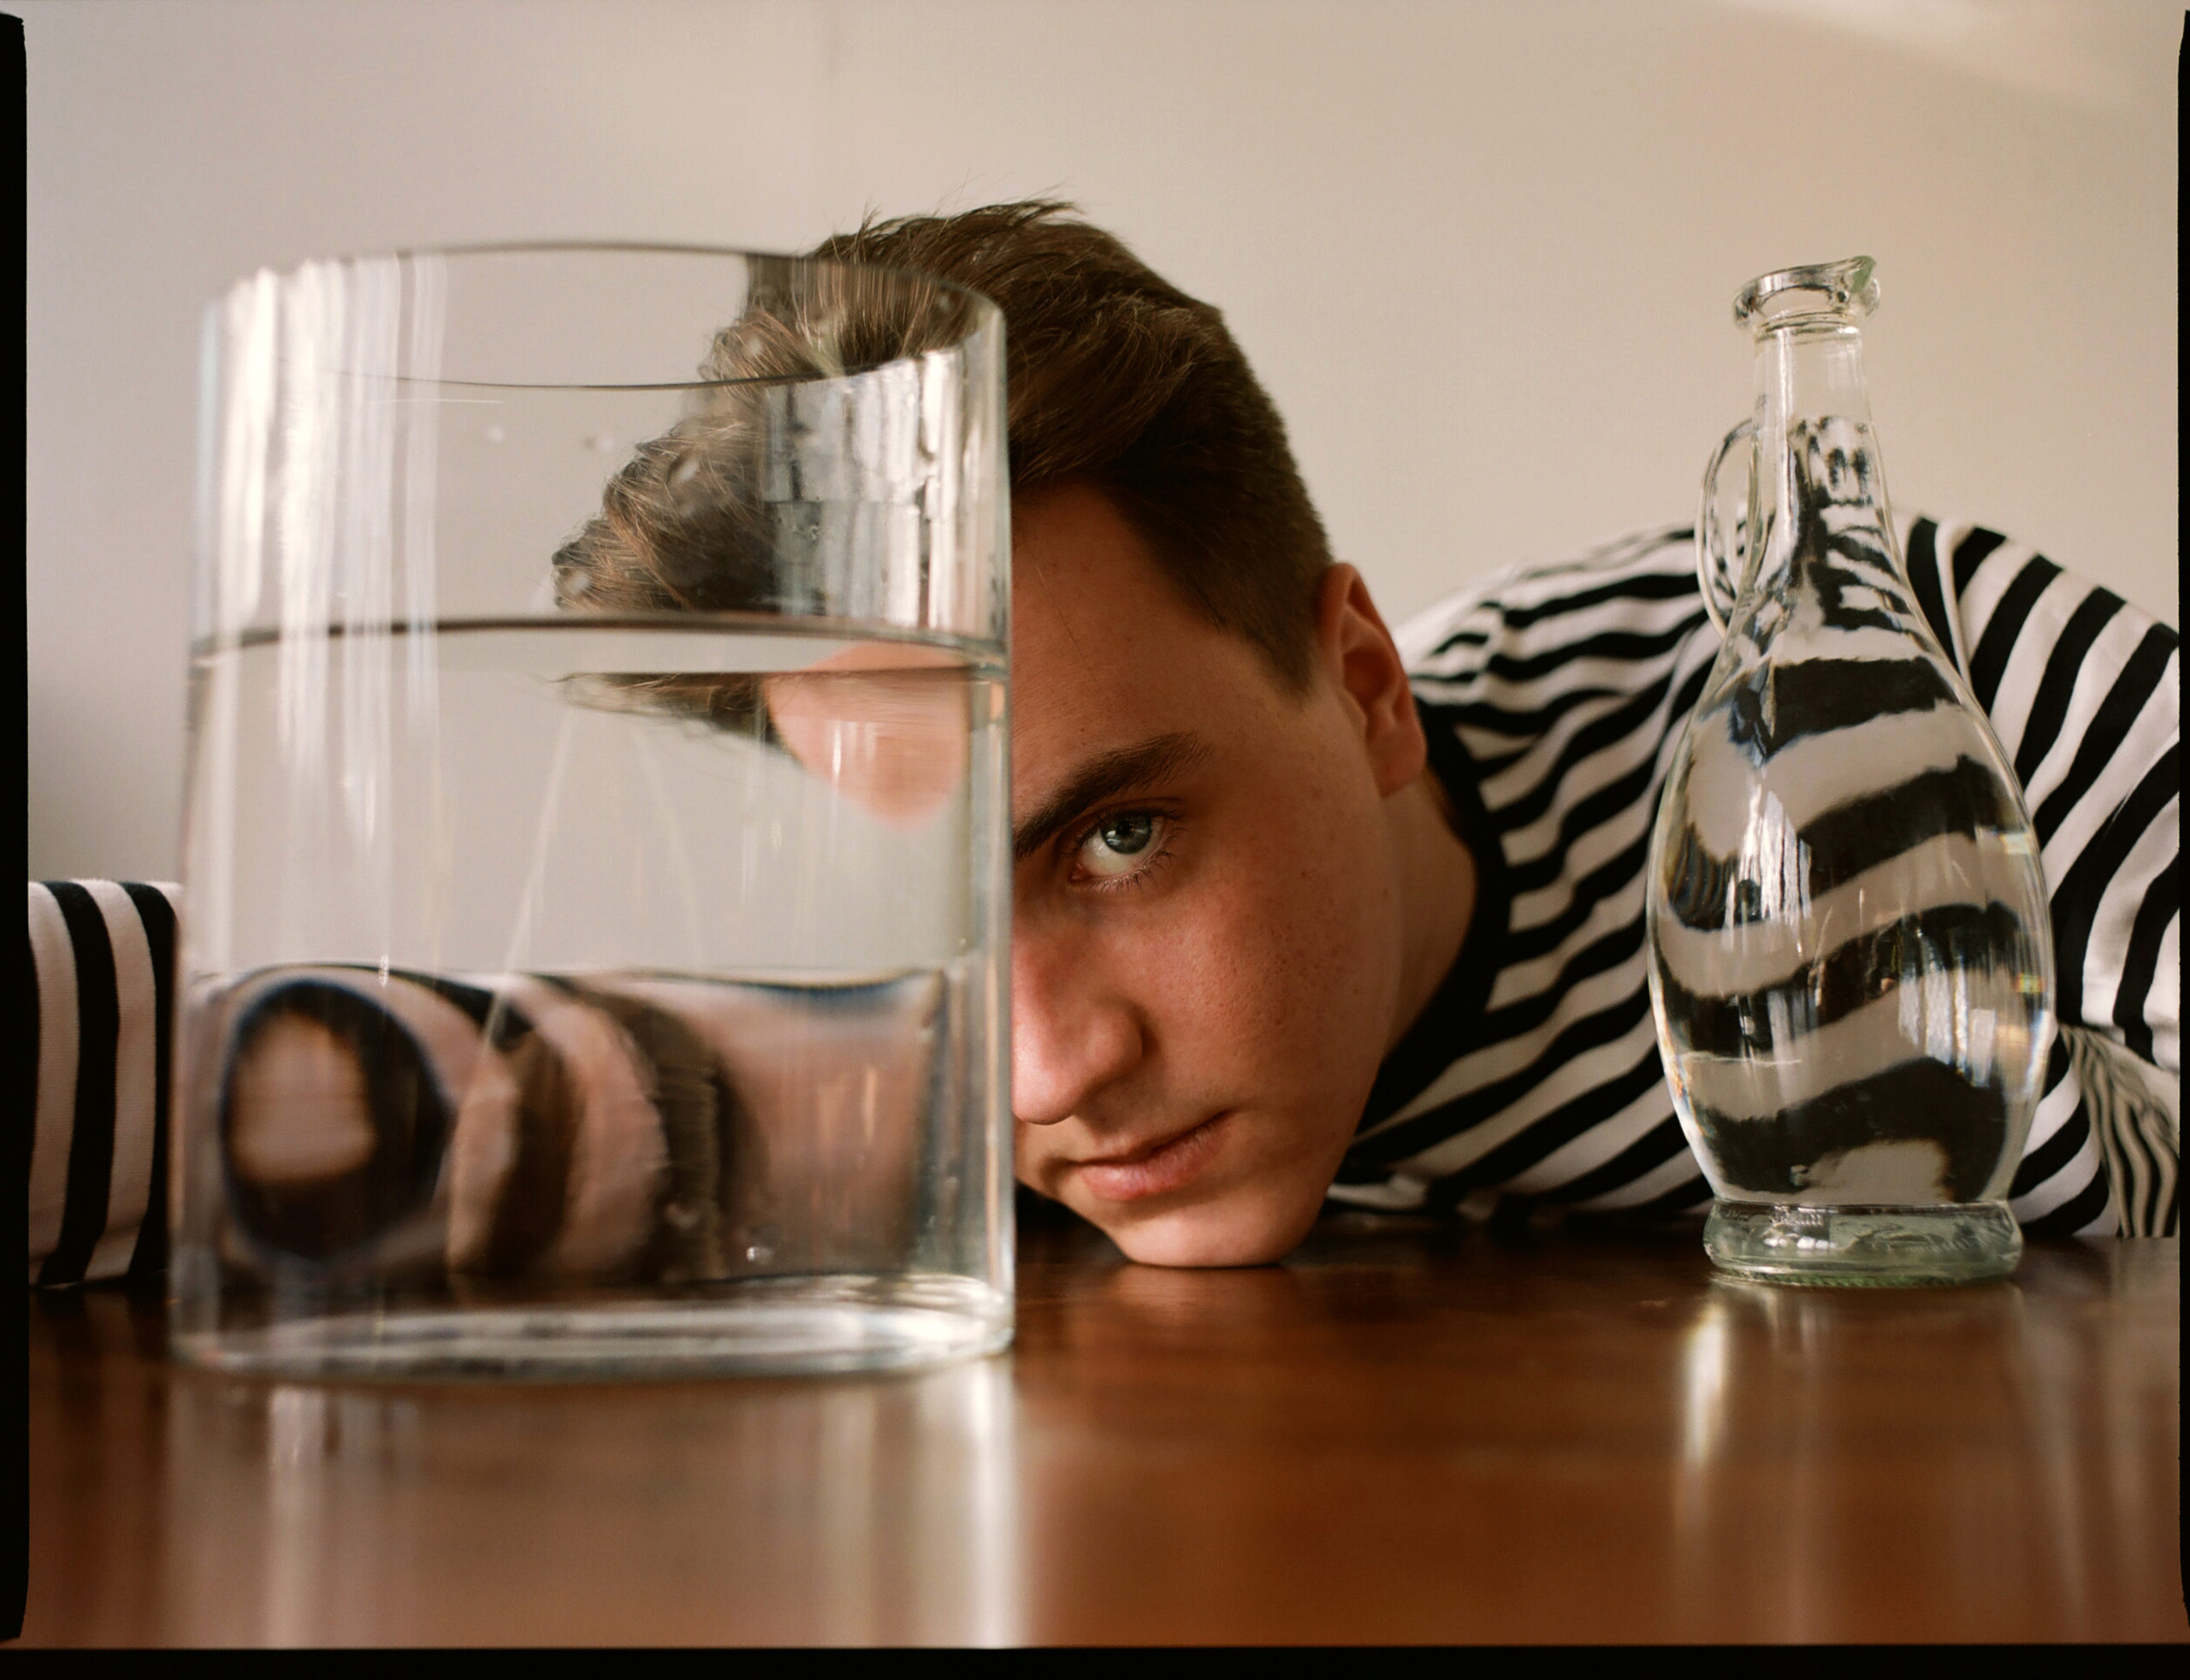 Author Tommy Sissons looks at the camera through a glass of water